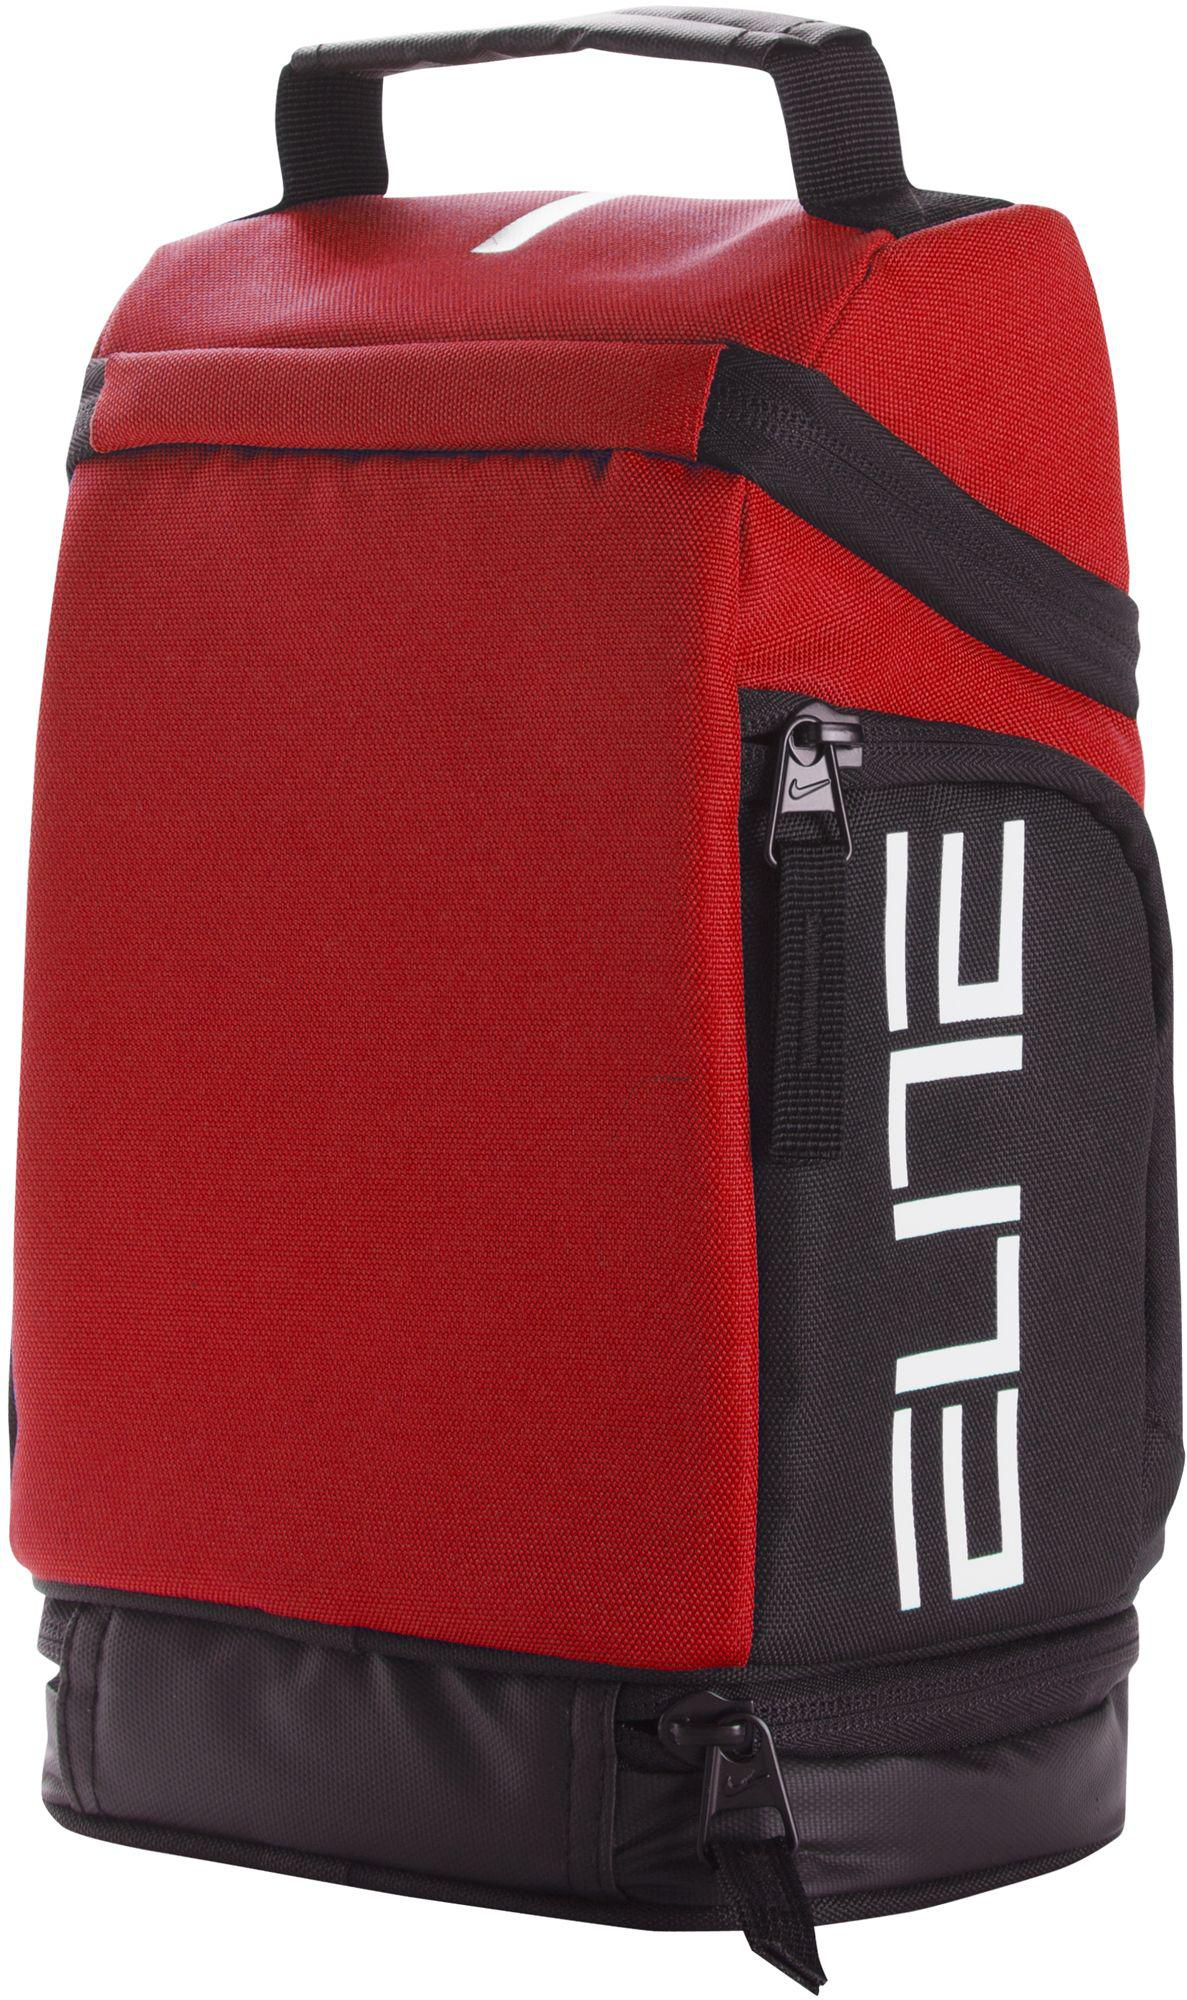 Lyst - Nike Elite Fuel Pack Lunch Tote Bag in Red for Men 946a7f6fbe8b7